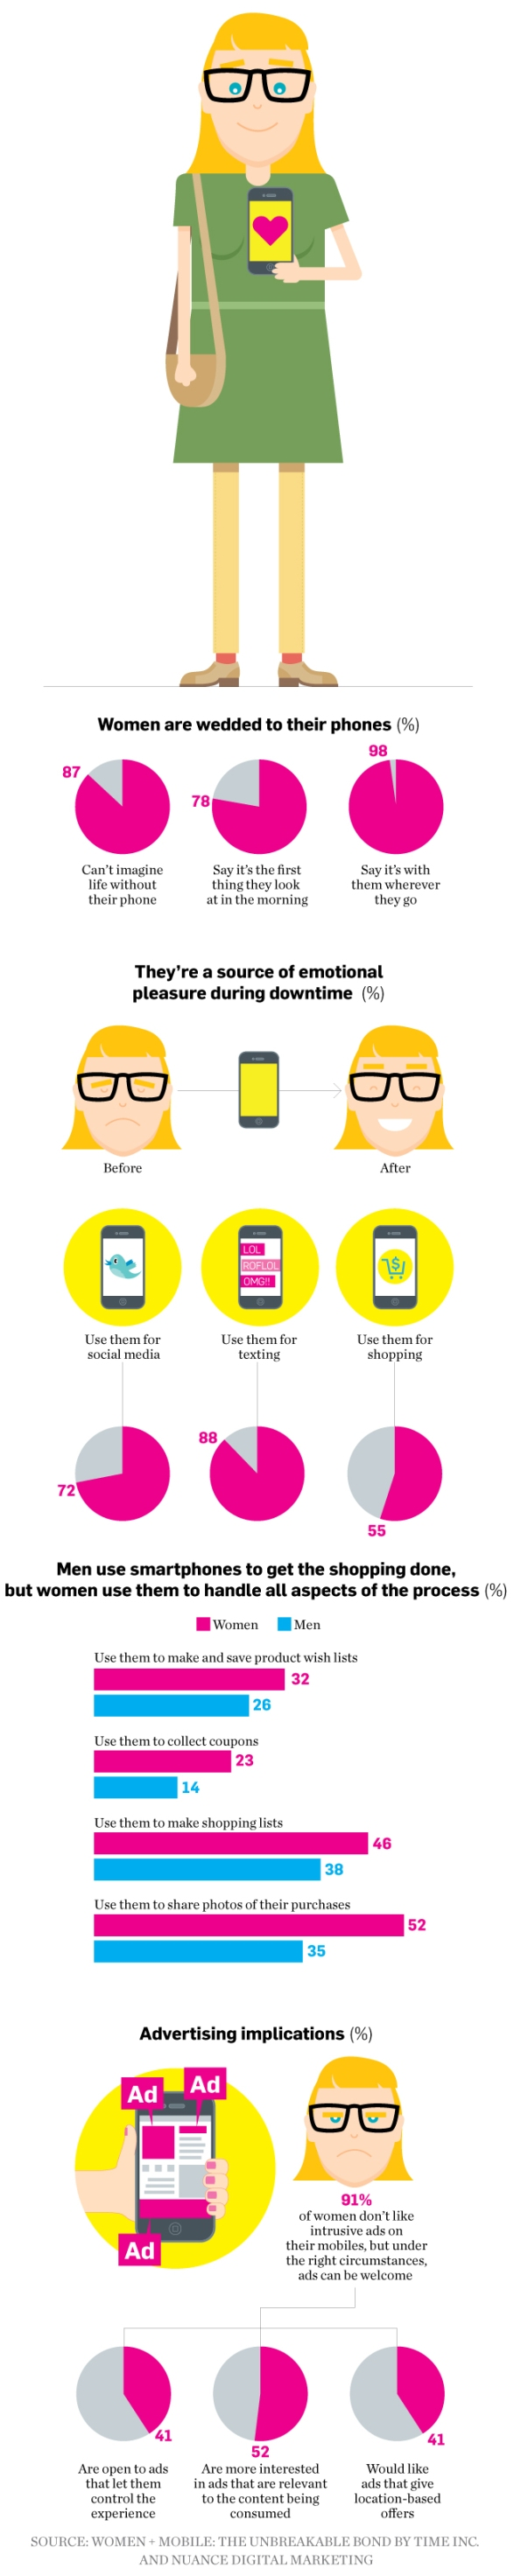 data-Smartphones-women-01-2013